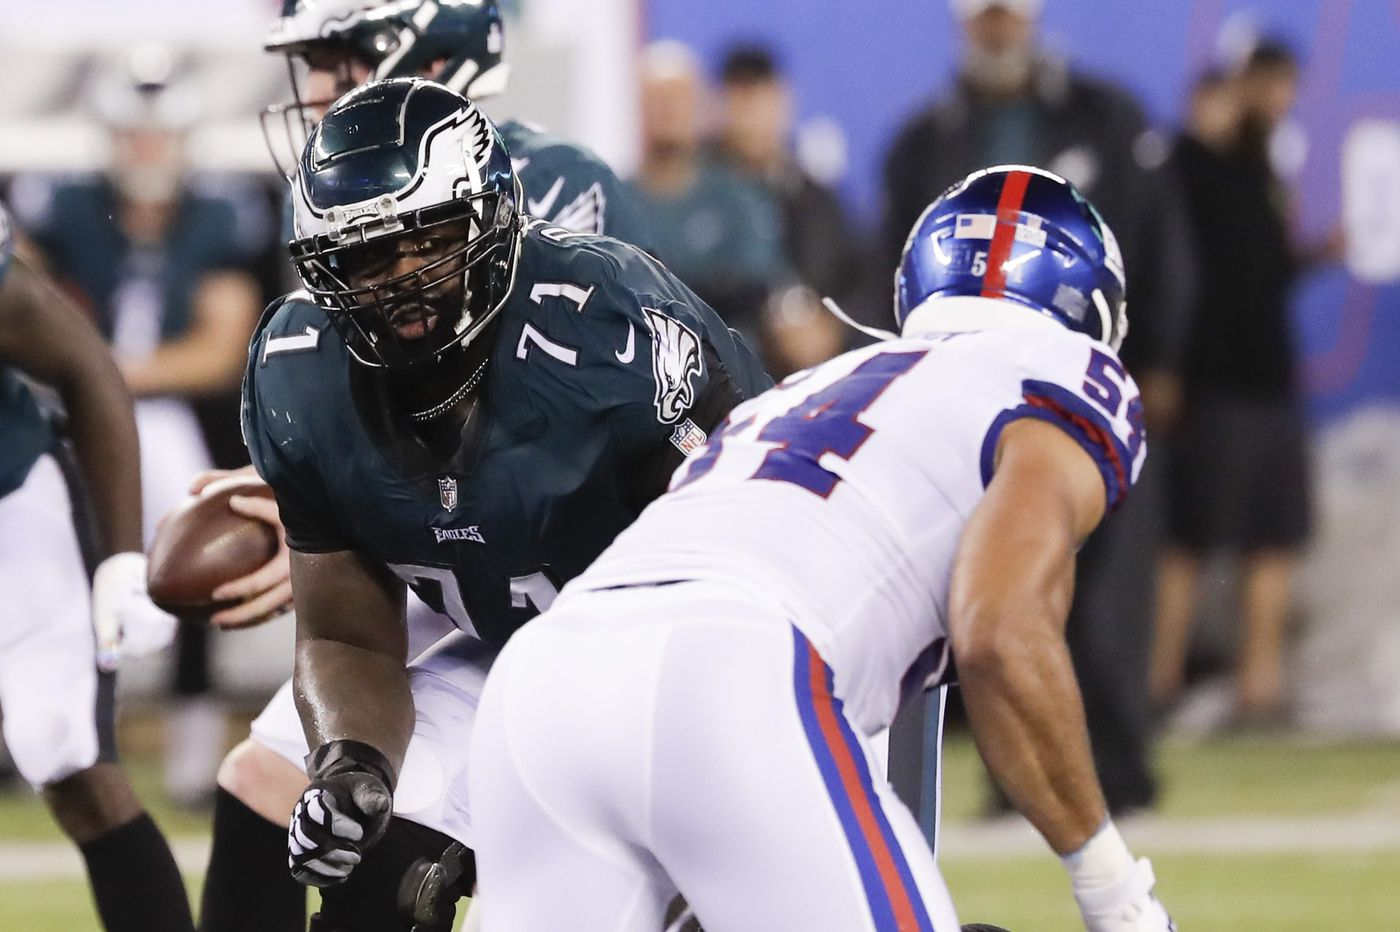 Eagles coach Doug Pederson says early signs are optimistic on Jason Peters; Sidney Jones 'week to week'